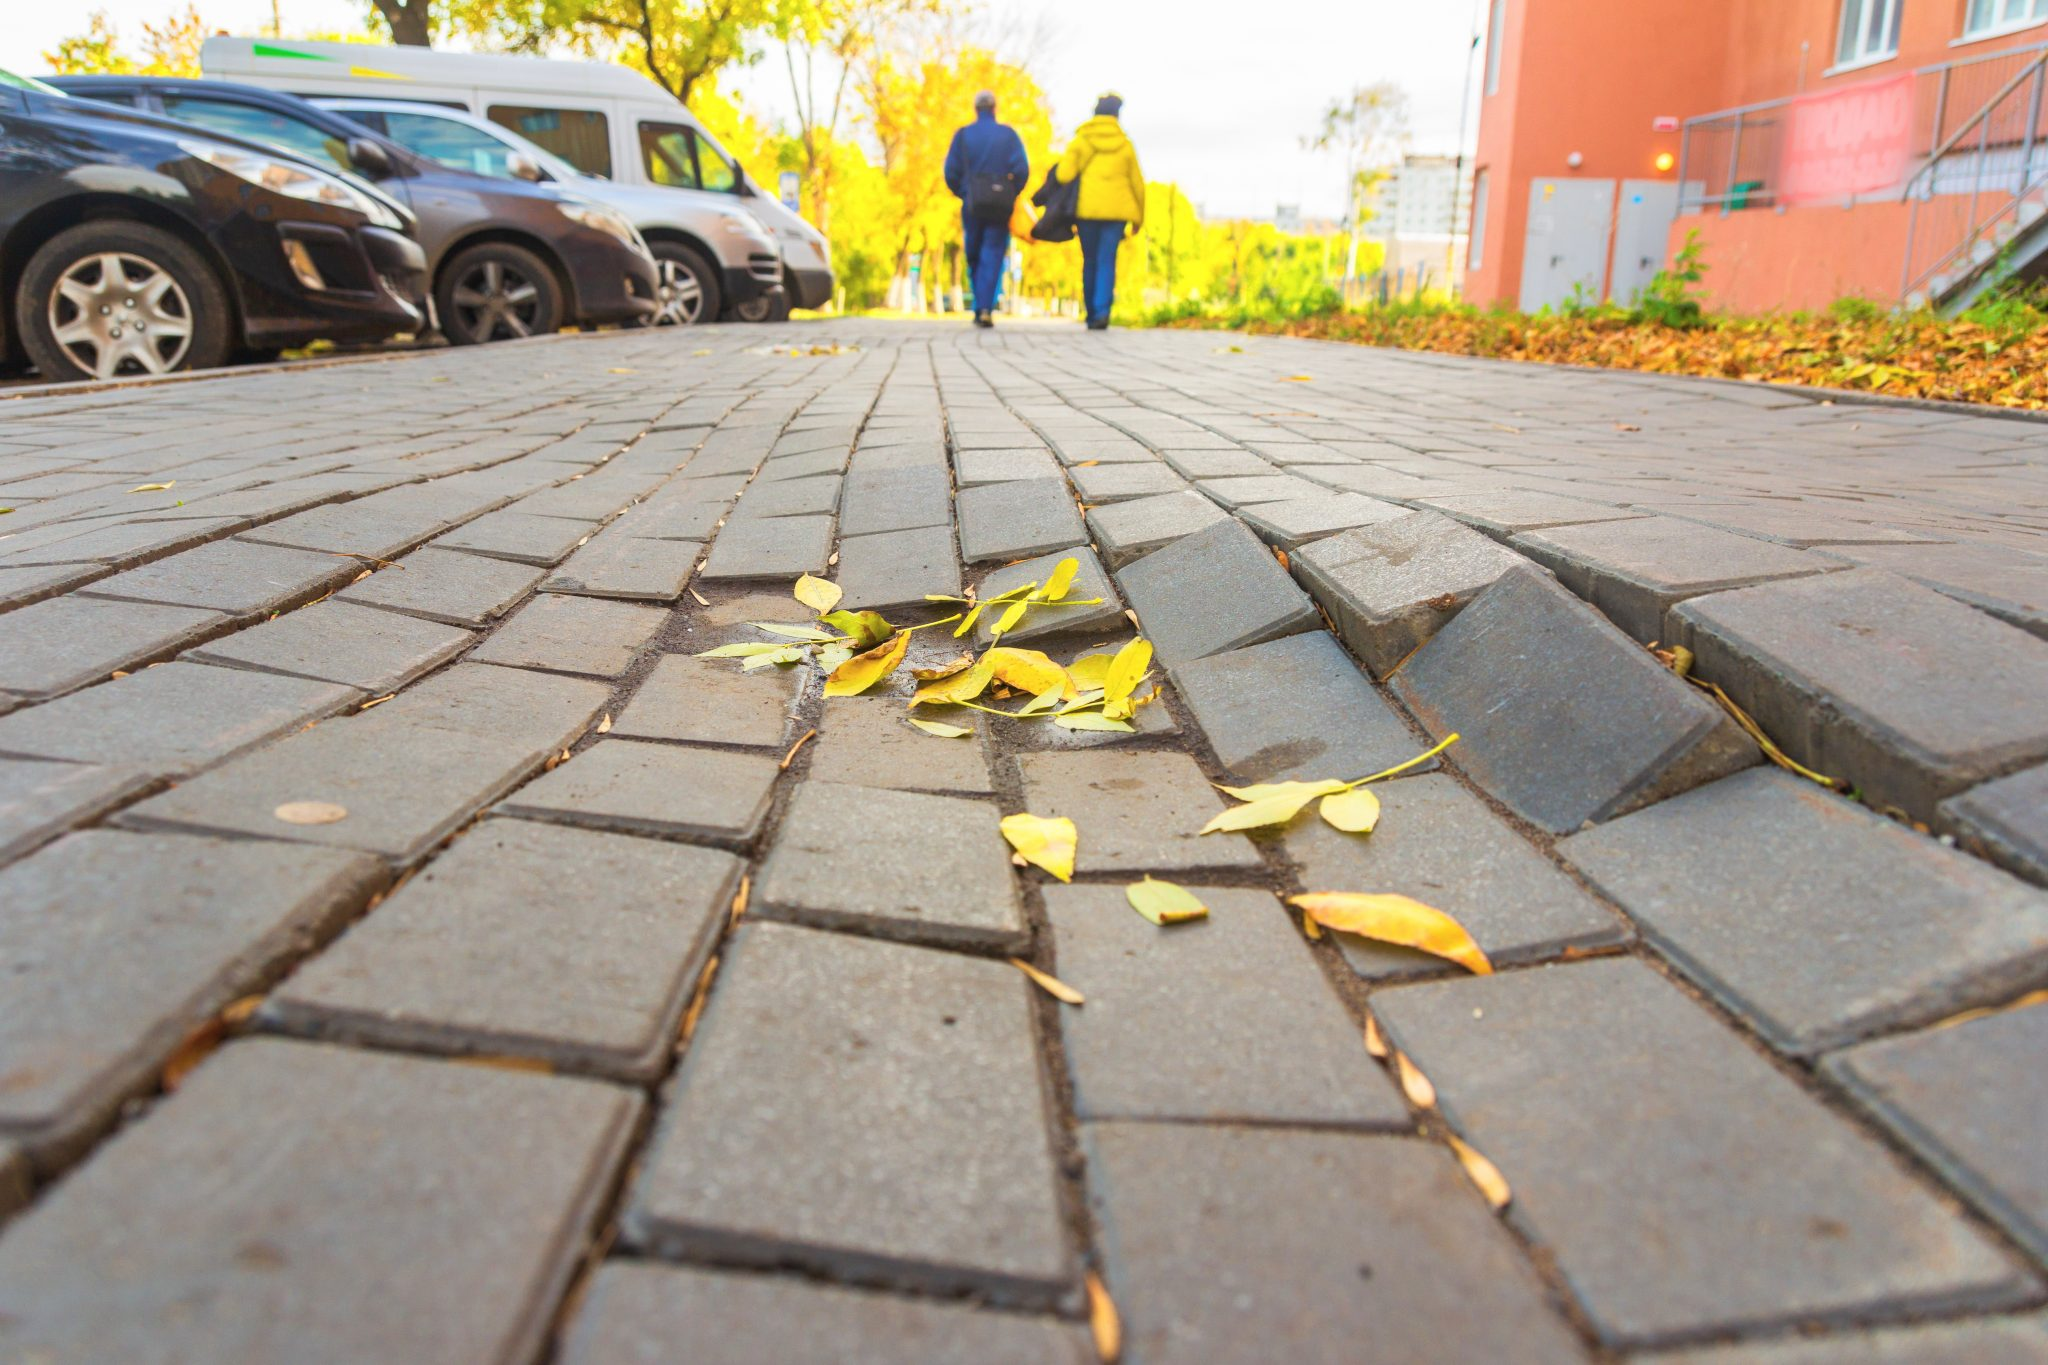 Destruction of paving slabs can lead to negligence lawsuit